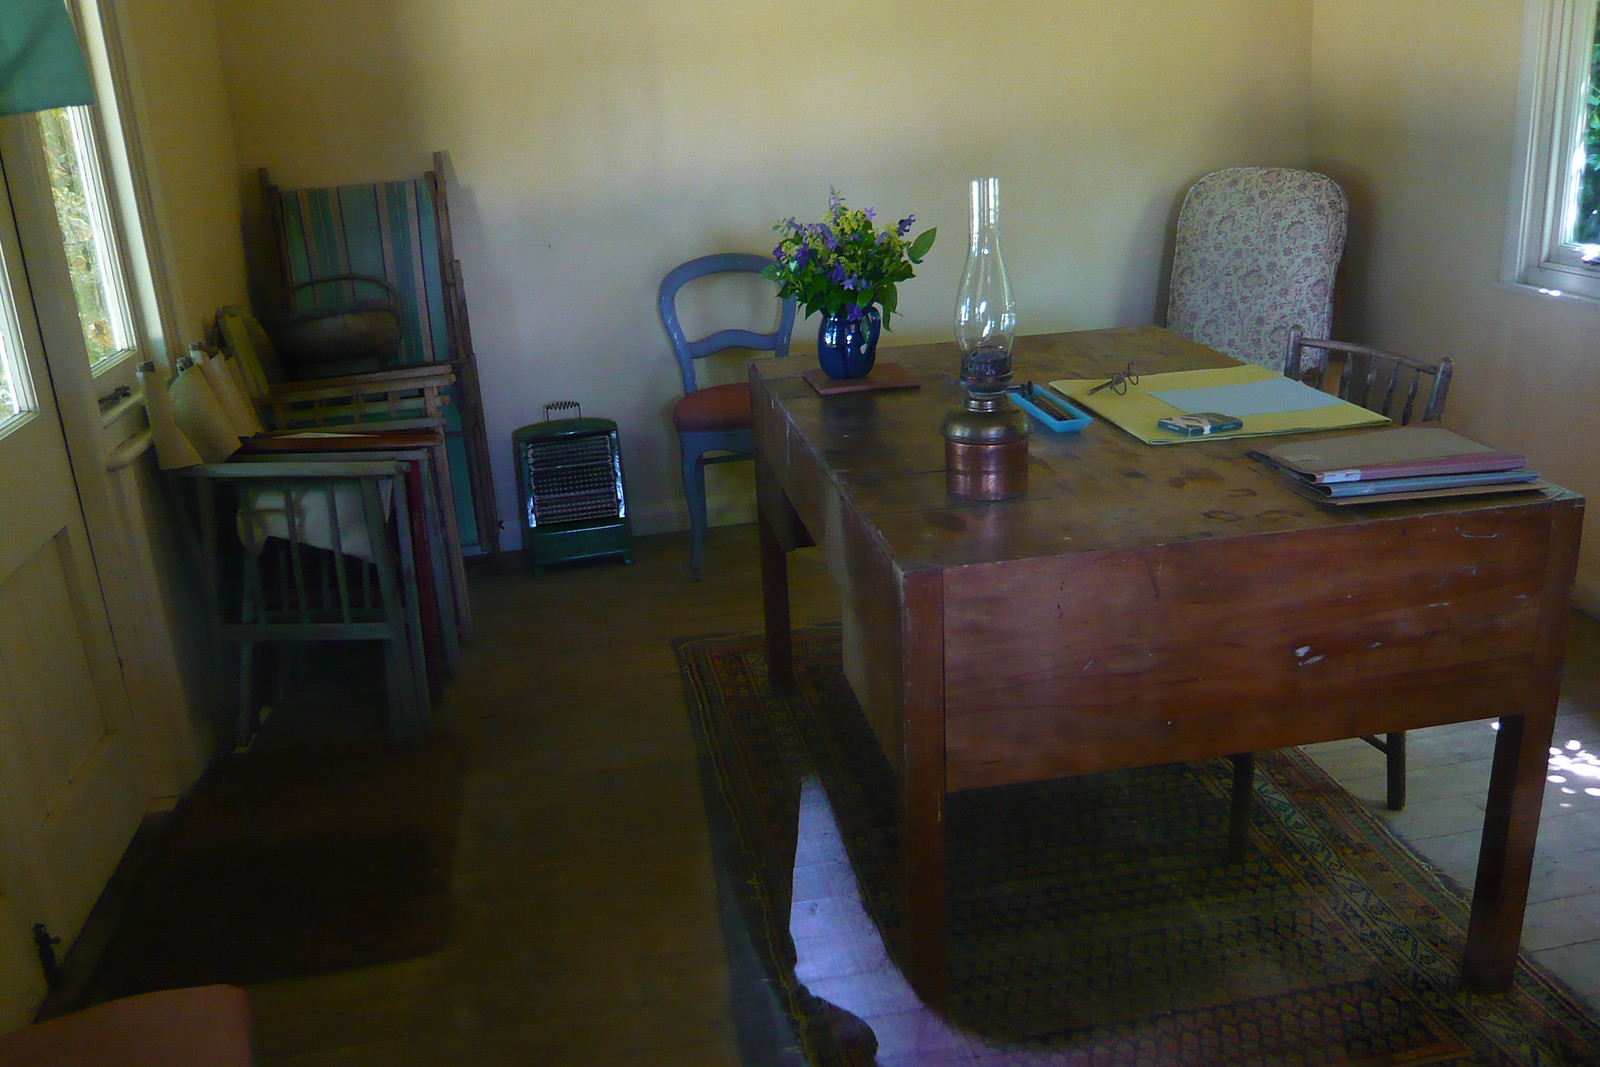 Virginia Woolf's writing cabin